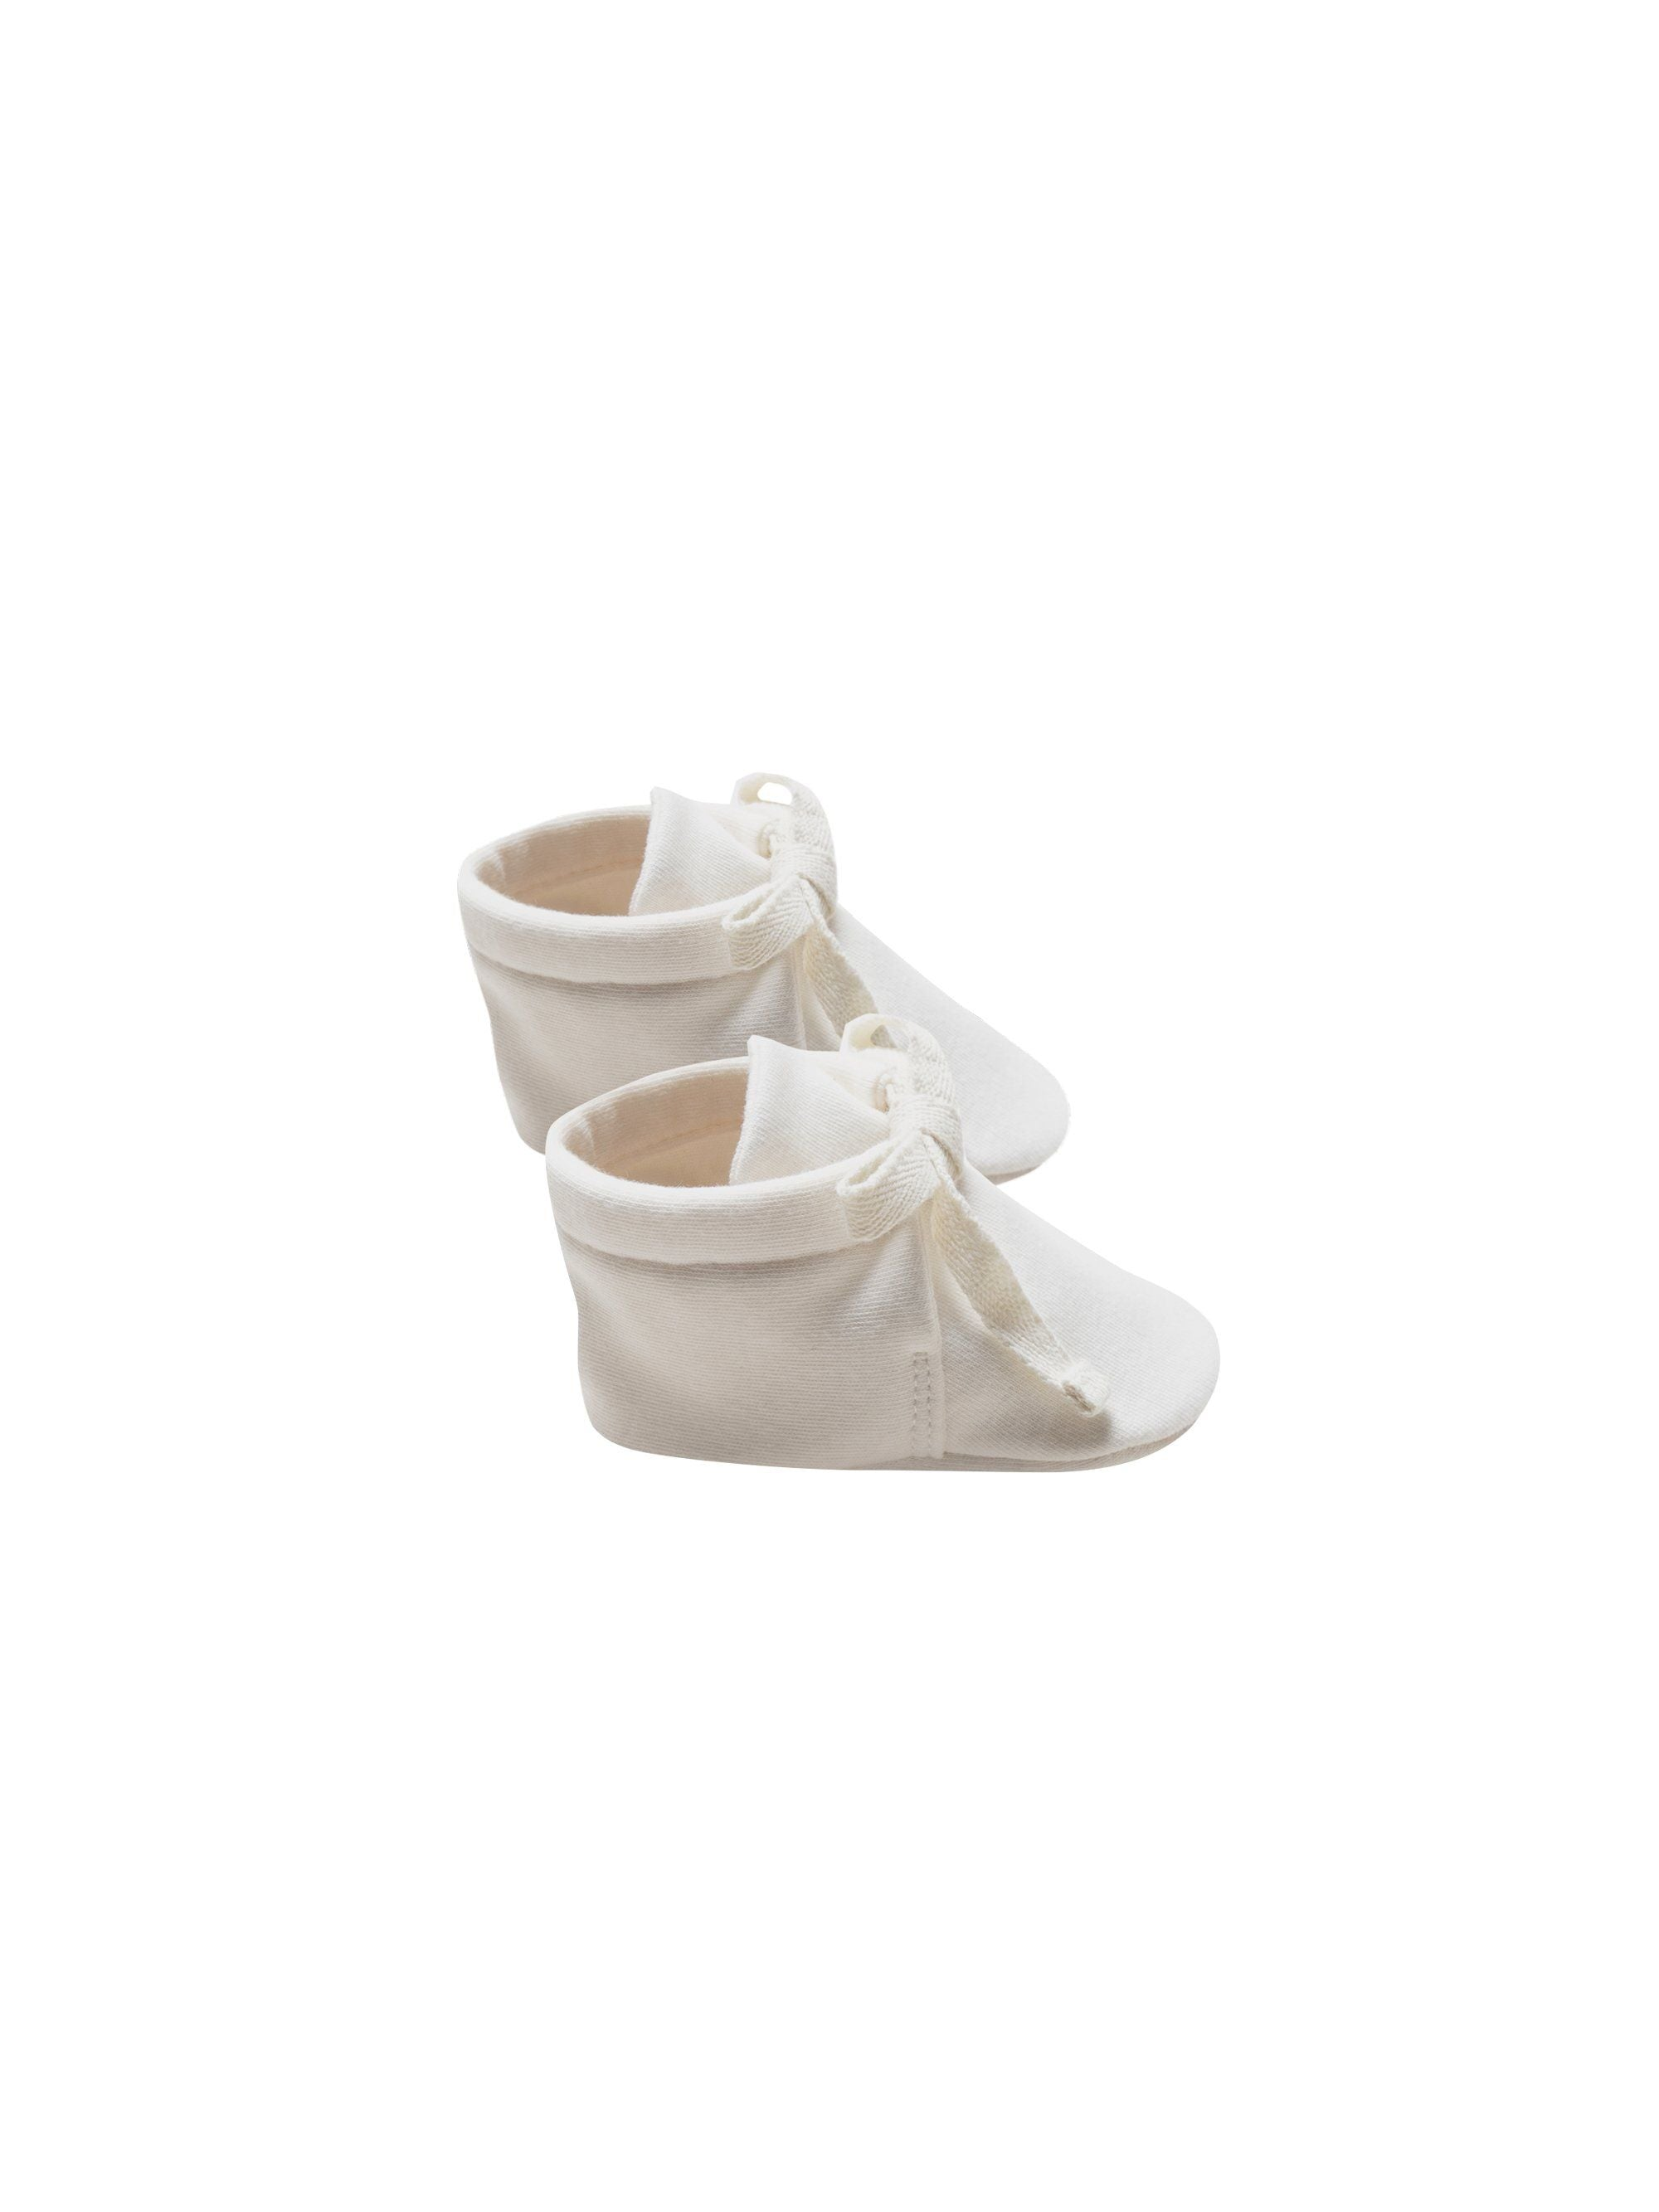 Quincy Mae Organic Baby Booties, Ivory